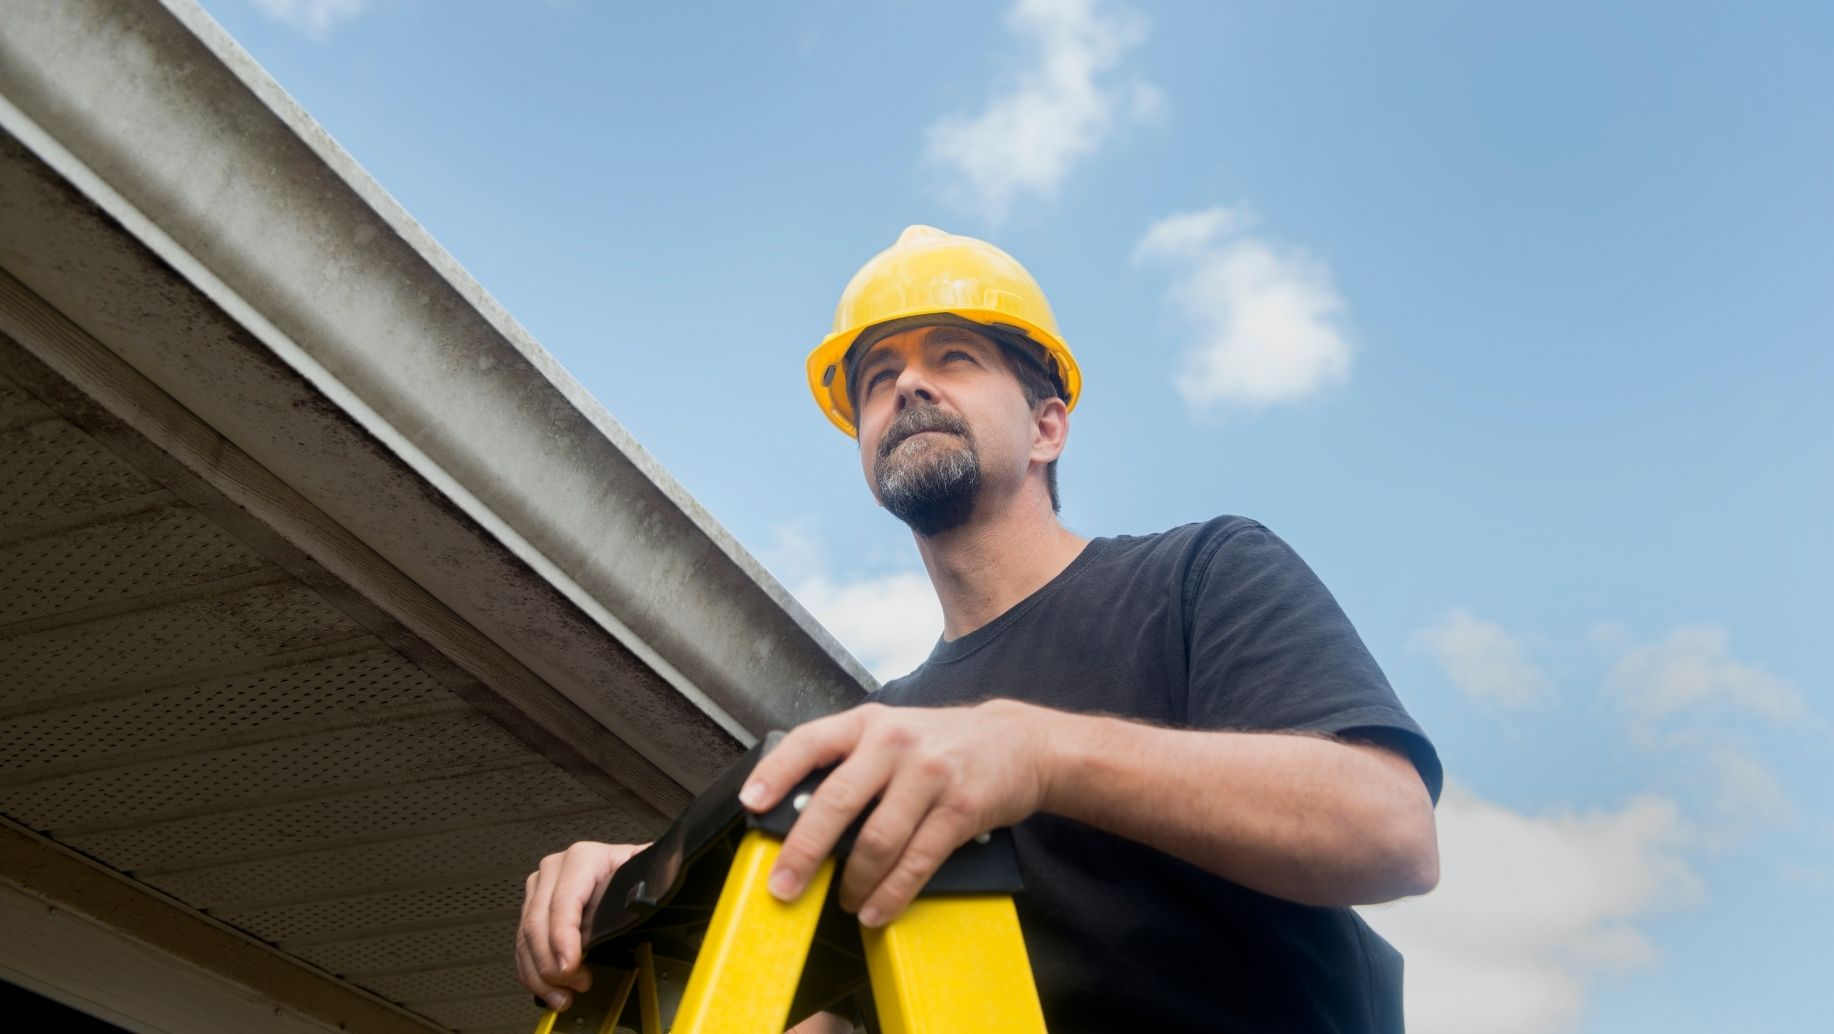 4 Tips to Safely Inspect Your Roof